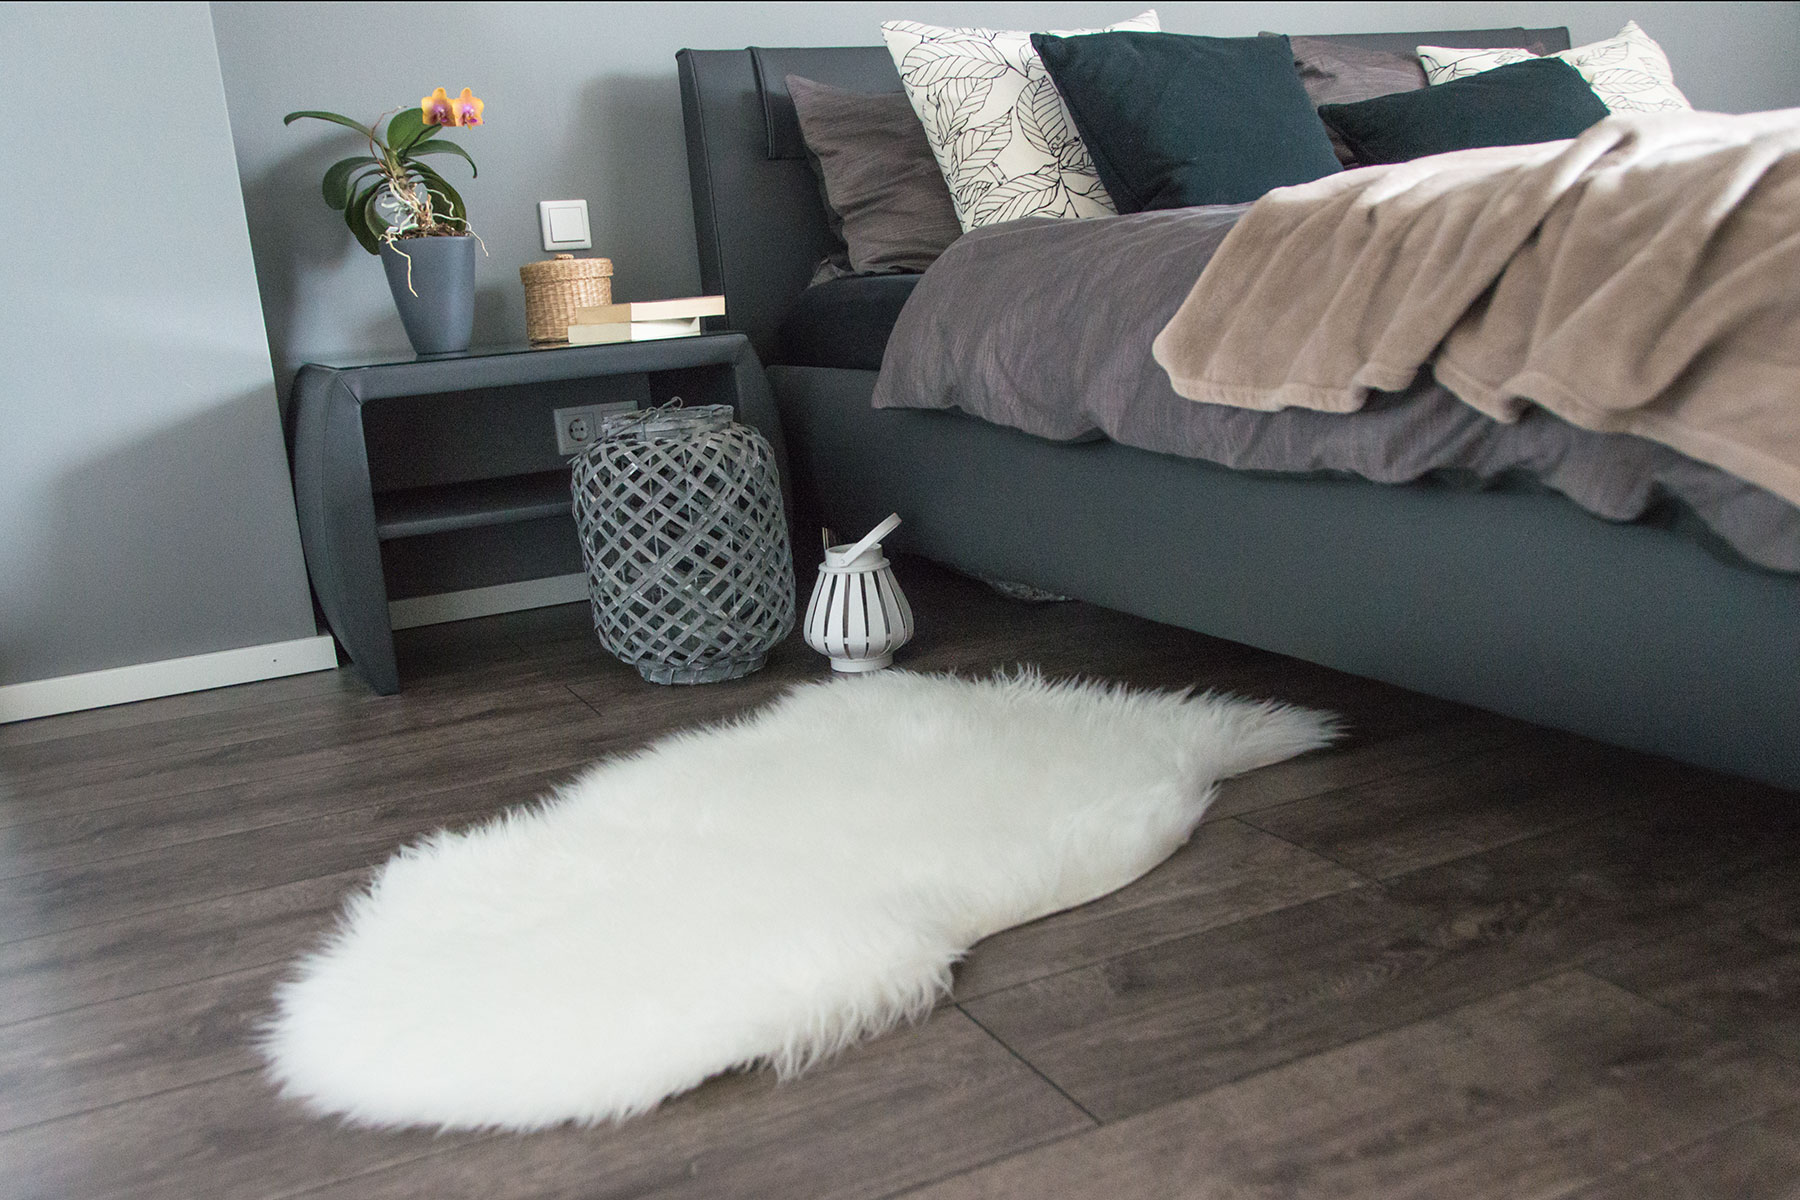 Anzeige Make Your Bed The Cosiest Place On Earth Marie Theres Schindler Beauty Blog